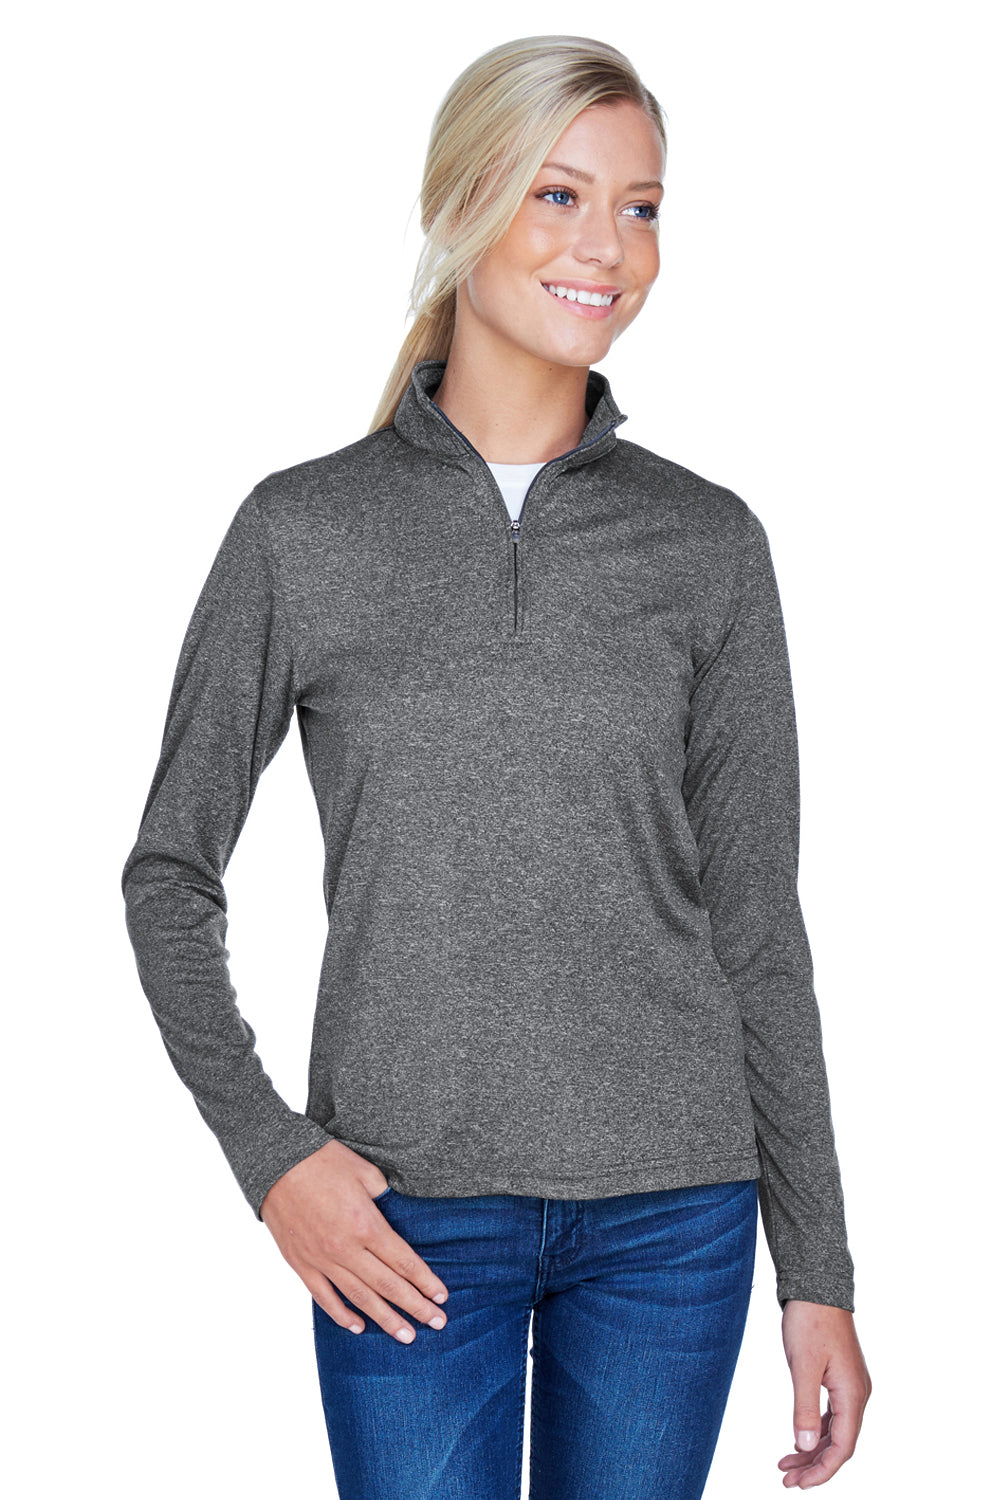 UltraClub 8618W Womens Heather Cool & Dry Performance Moisture Wicking 1/4 Zip Sweatshirt Black Front